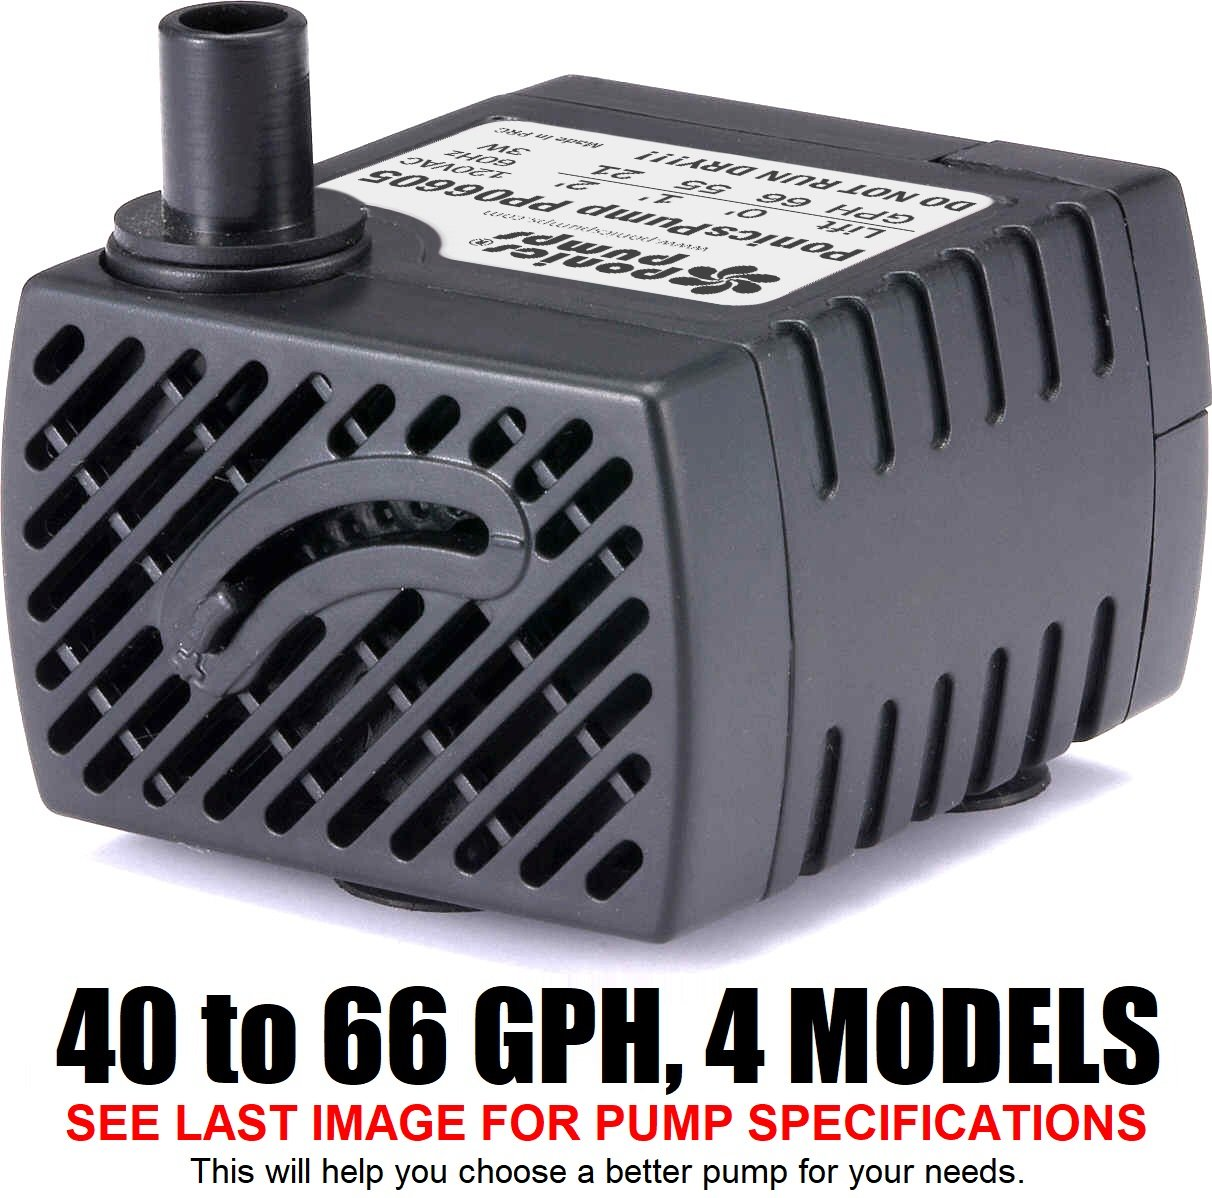 PonicsPump PP06605: 66 GPH Submersible Pump with 5 Cord - 3W... for Quality Indoor/Outdoor/Table-Top Fountain Pump for Fountains, Statuary, Aquariums & more. Comes with 1 year limited warranty. by PonicsPumps